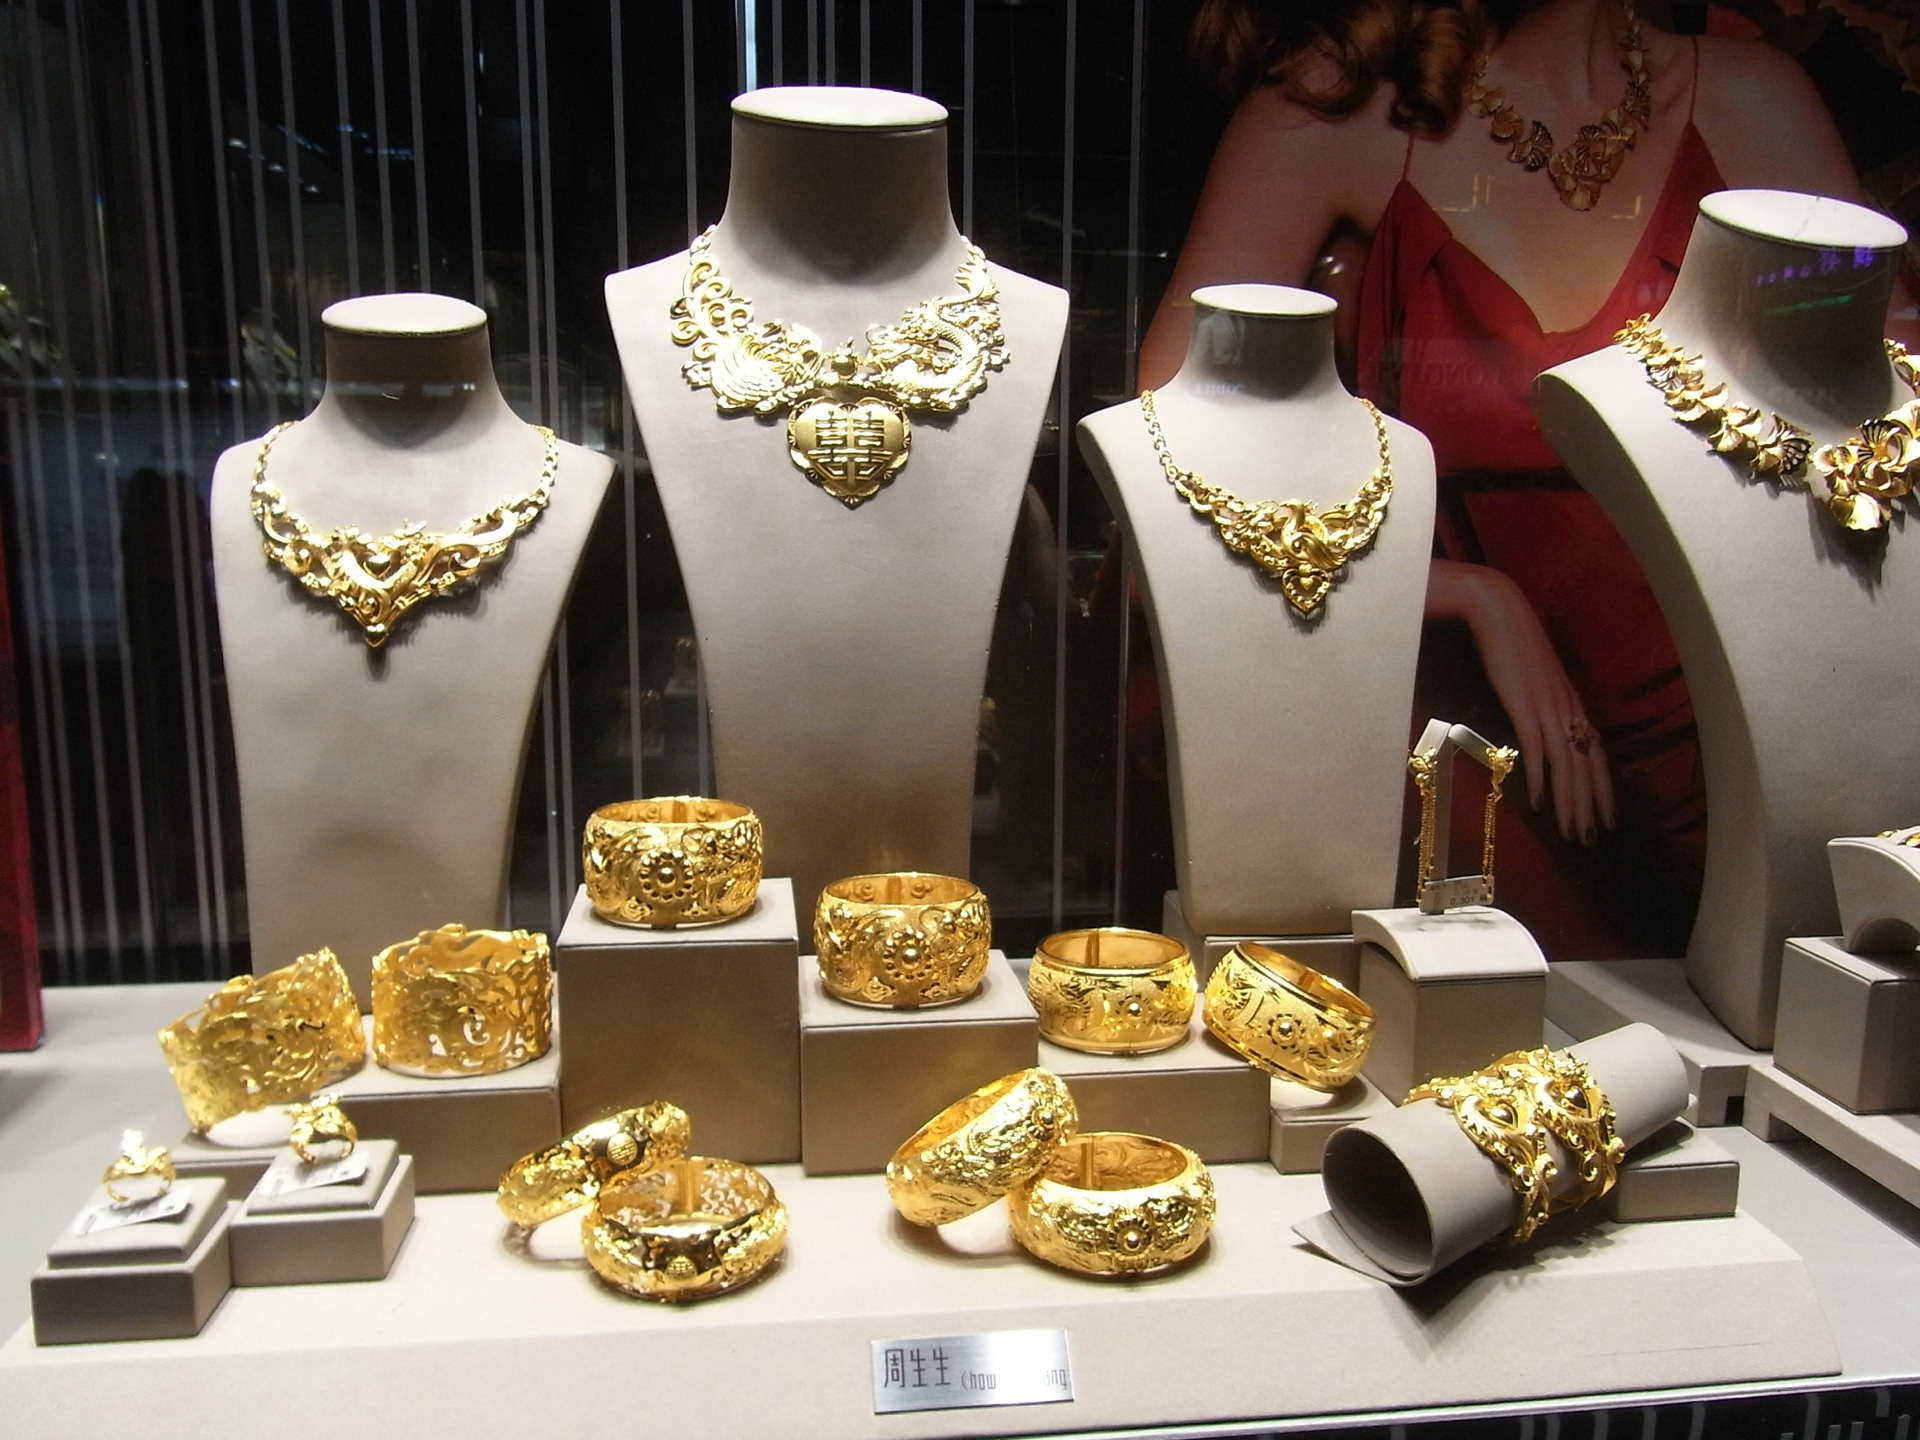 Fashionable jewelry window display focused mostly on the over-sized gold bangles. A simple display which puts the attention on the jewels rather than the decoration.